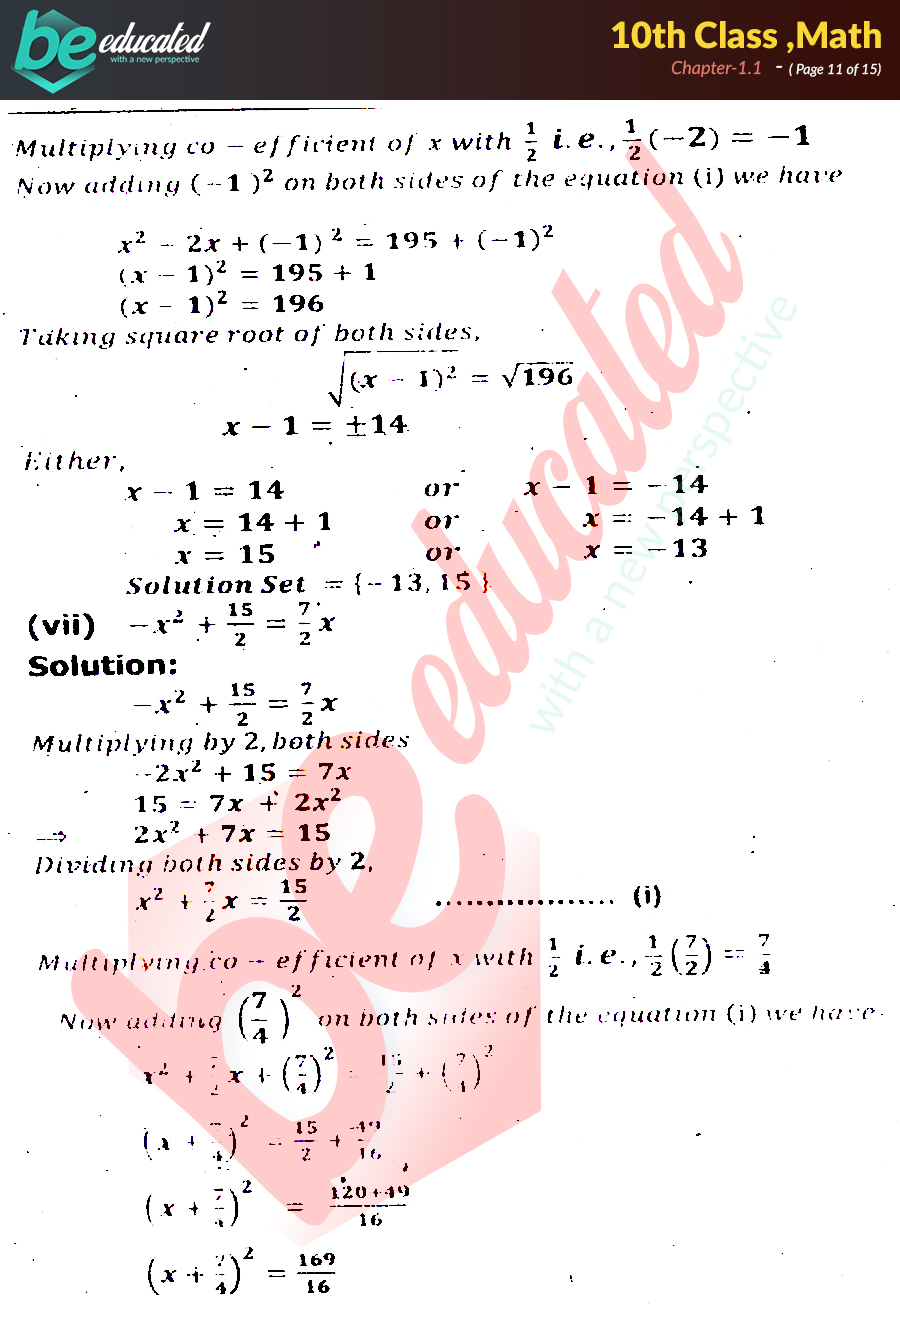 Exercise 1 1 Math 10th Class Notes - Matric Part 2 Notes